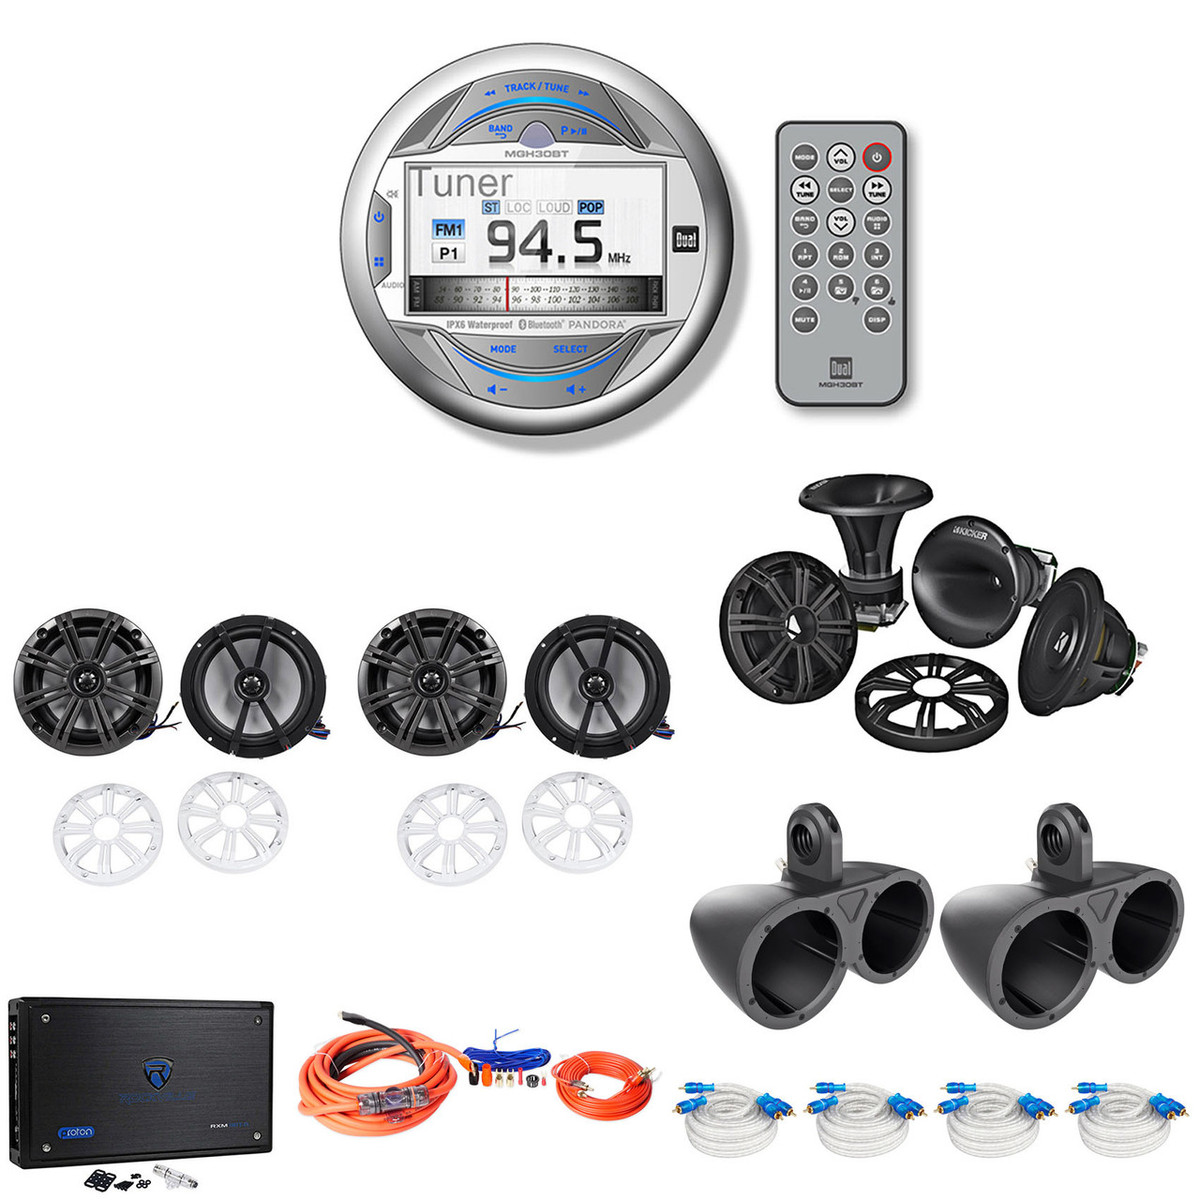 Kmtap Adapter Pack Dual Marine Cd Player 4 Kicker 6 5 Boat Speakers 2 Wakeboards 8 Ch Amp Amp Kit